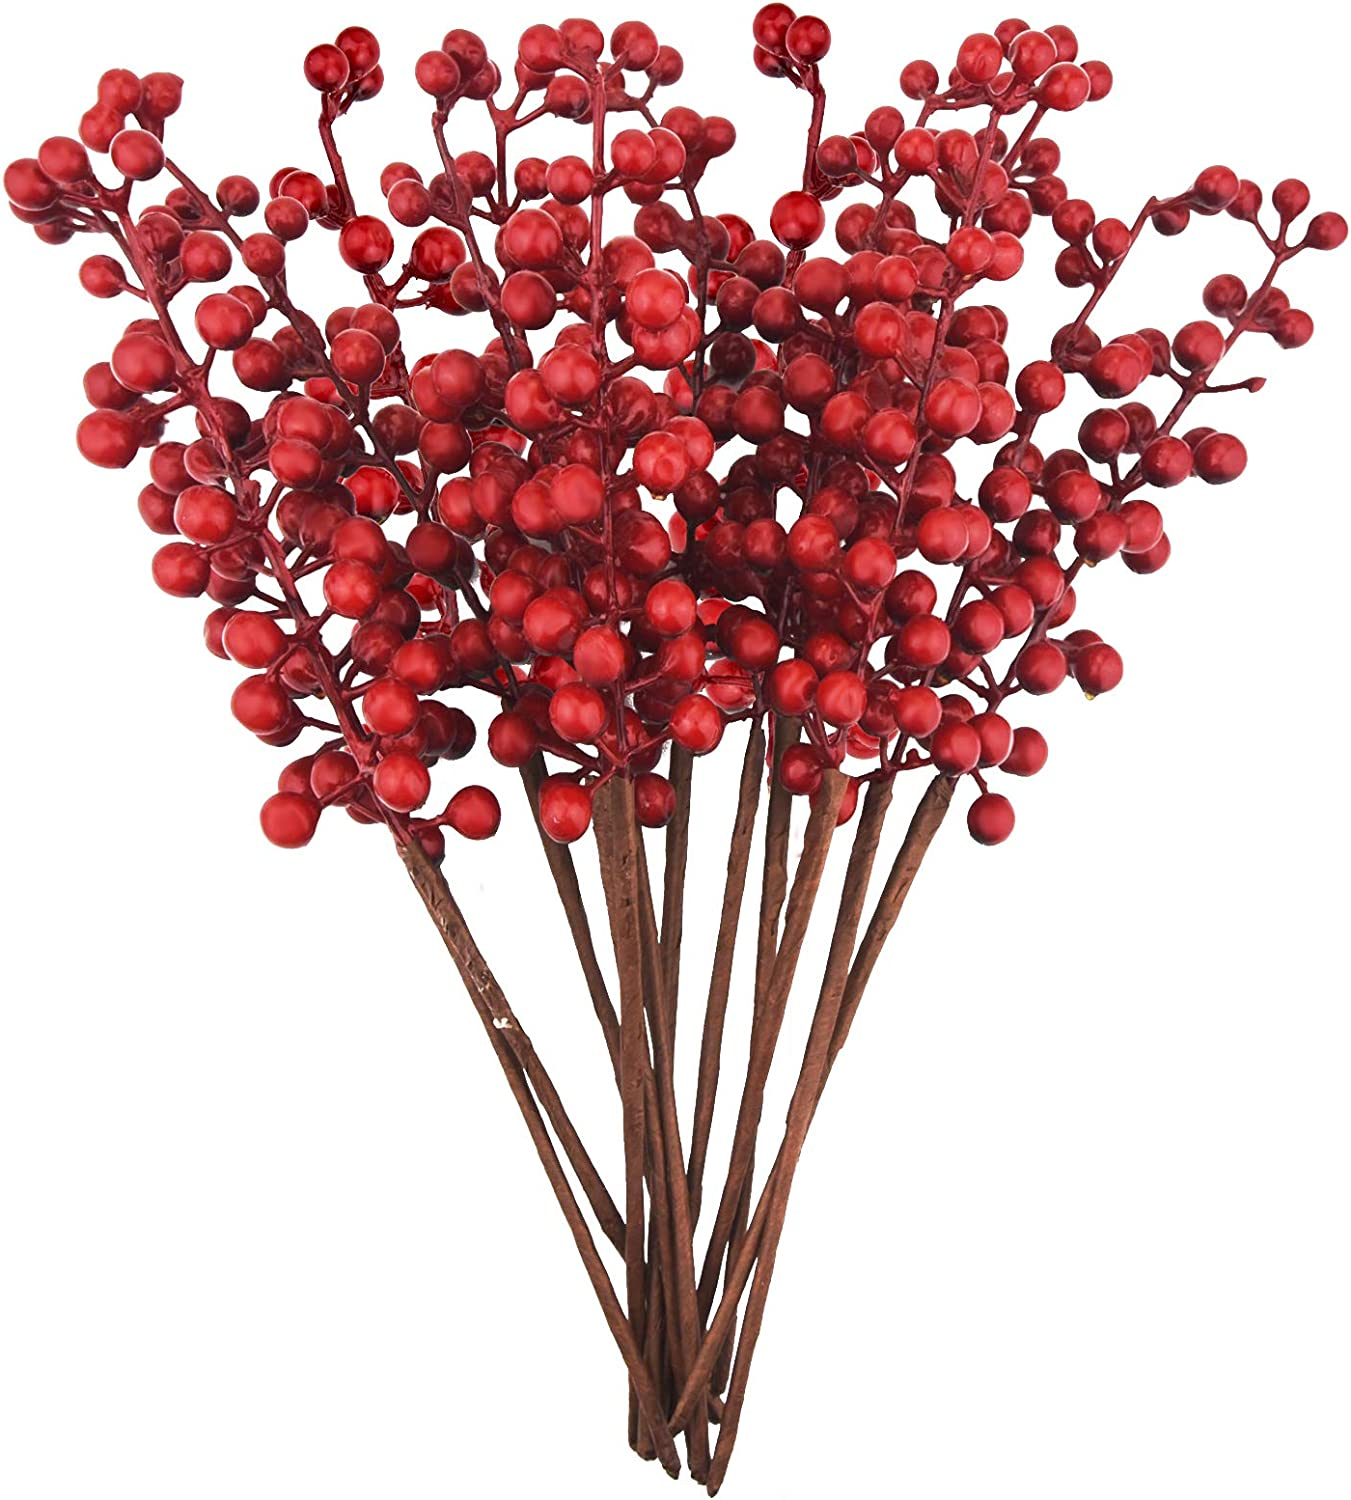 12 Pack Artificial Red Berry Stems Branches, Jmkcoz Fake Burgundy Berry Picks Faux Holly Berries for Christmas Tree Xmas Wreath Decorations Floral Arrangements, Halloween Holiday Home DIY Crafts Decor